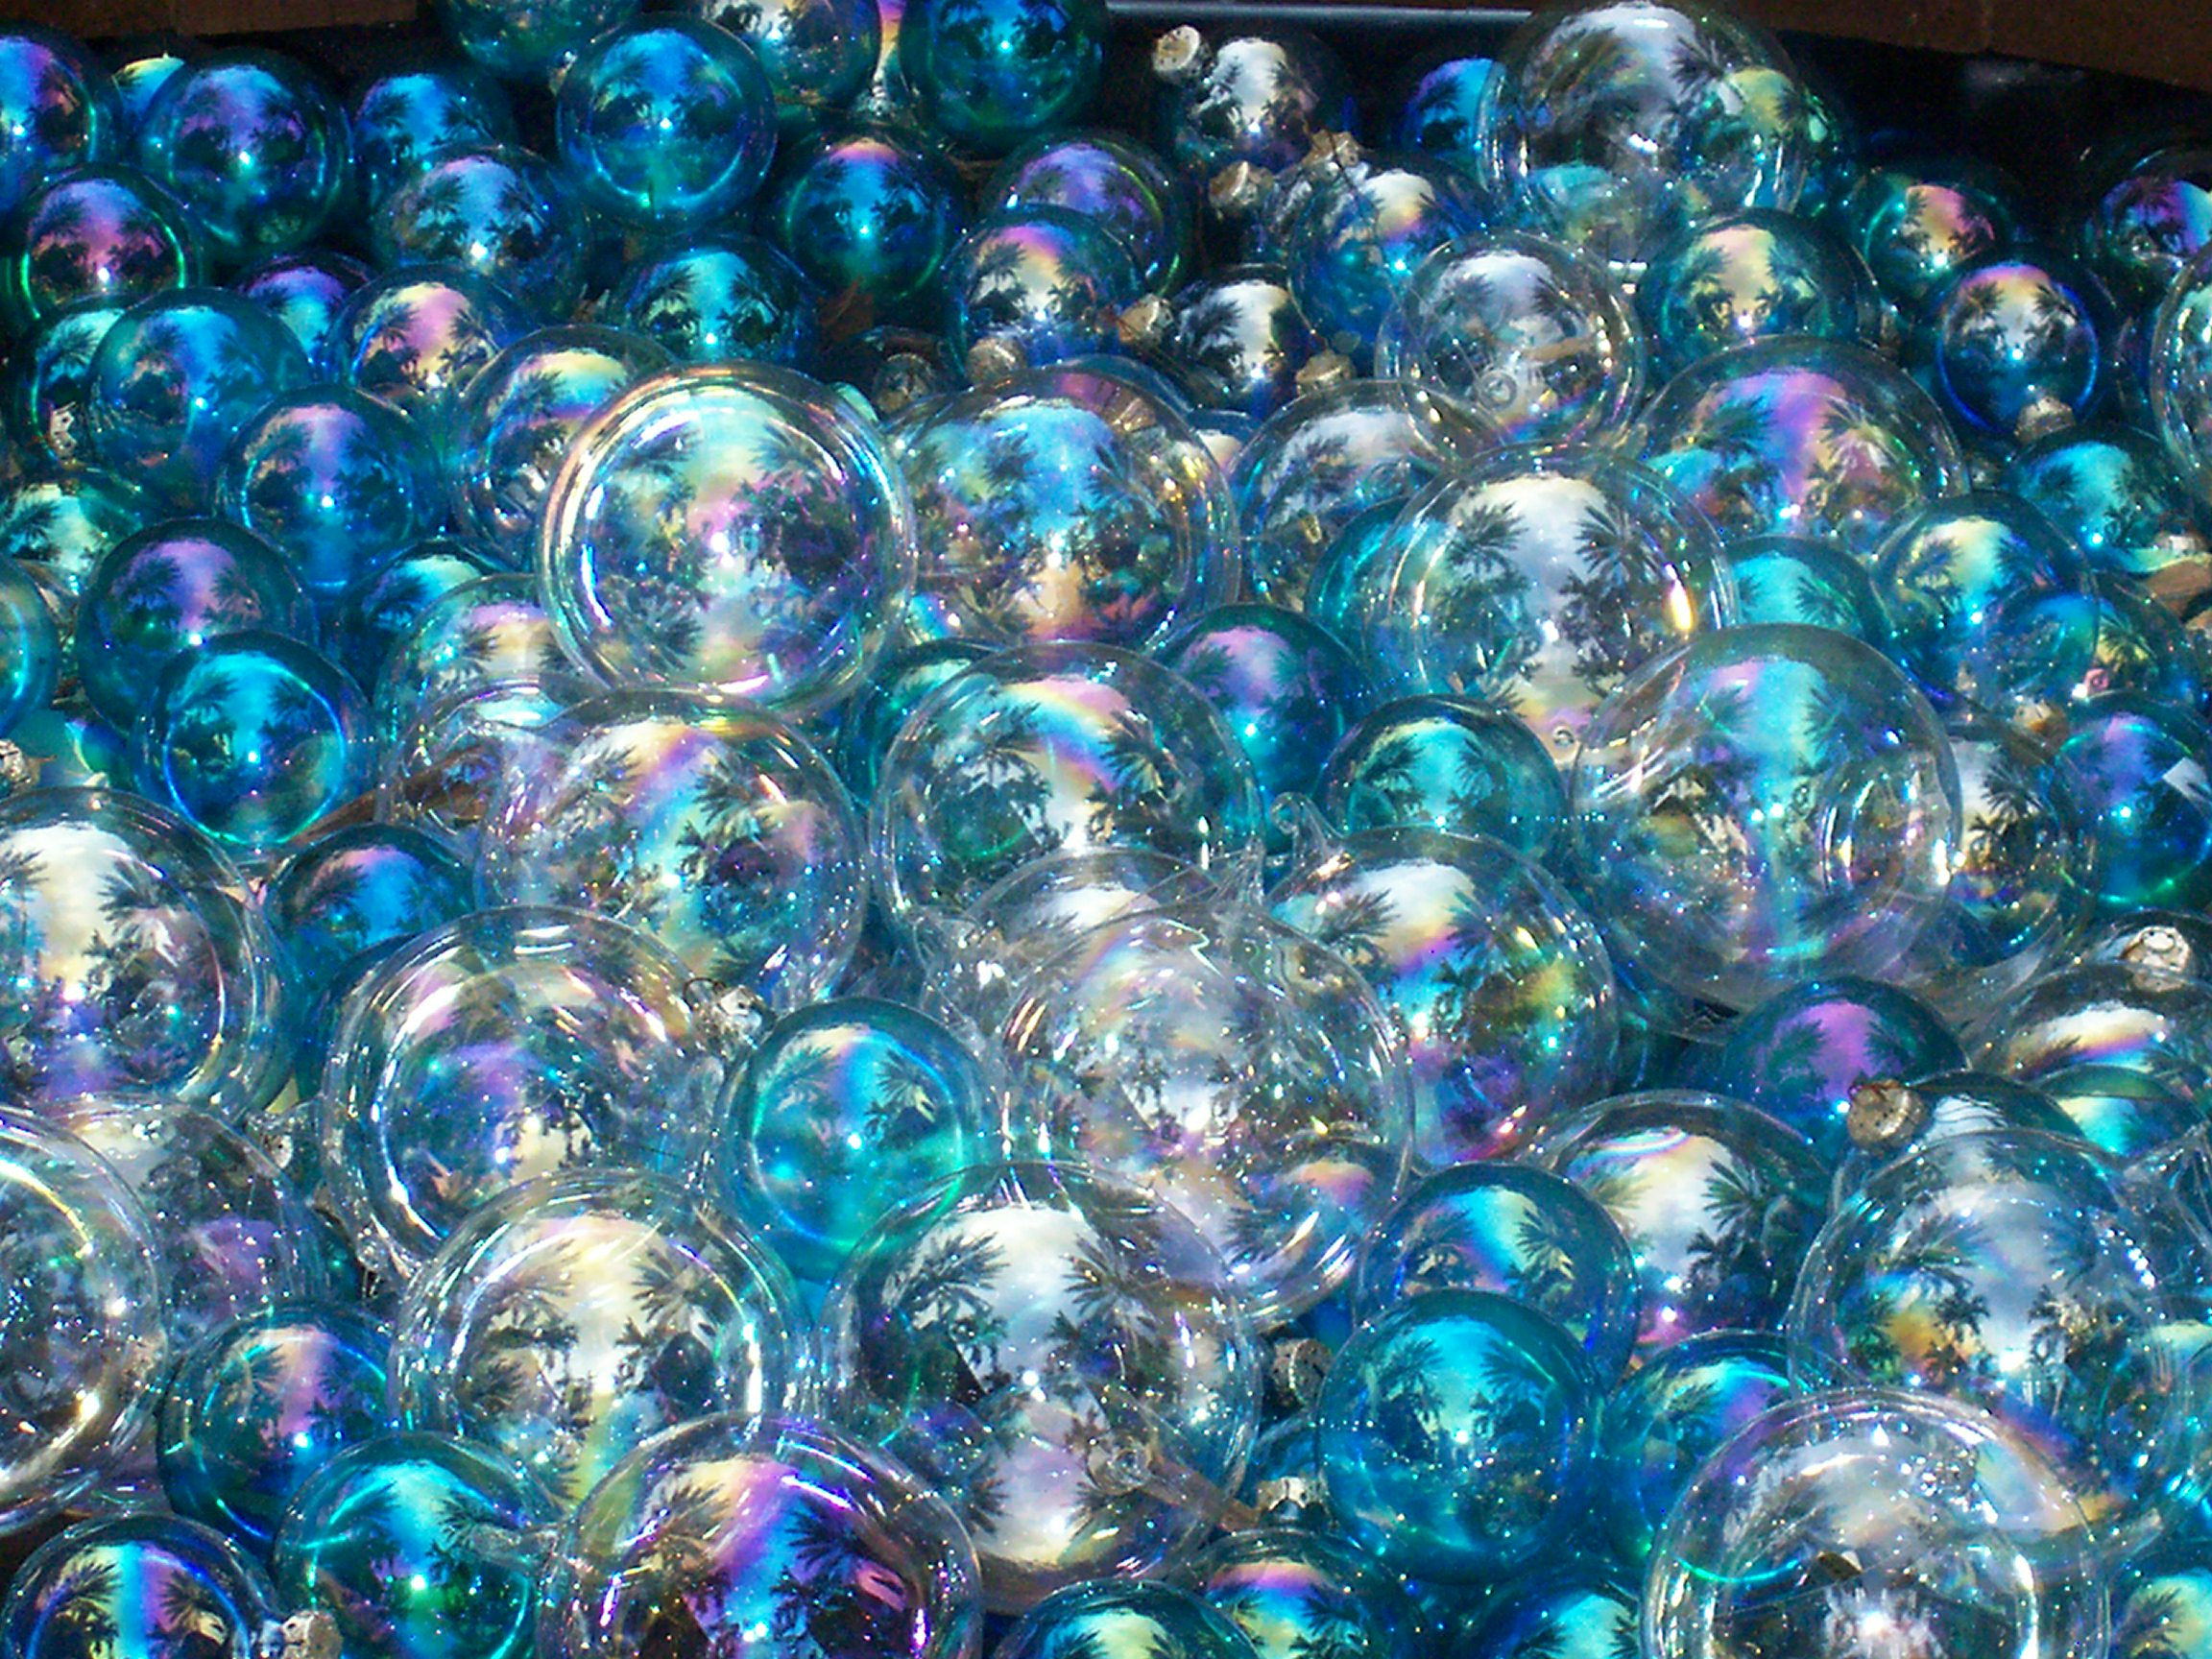 bubbles images bubbles hd wallpaper and background photos 40143287